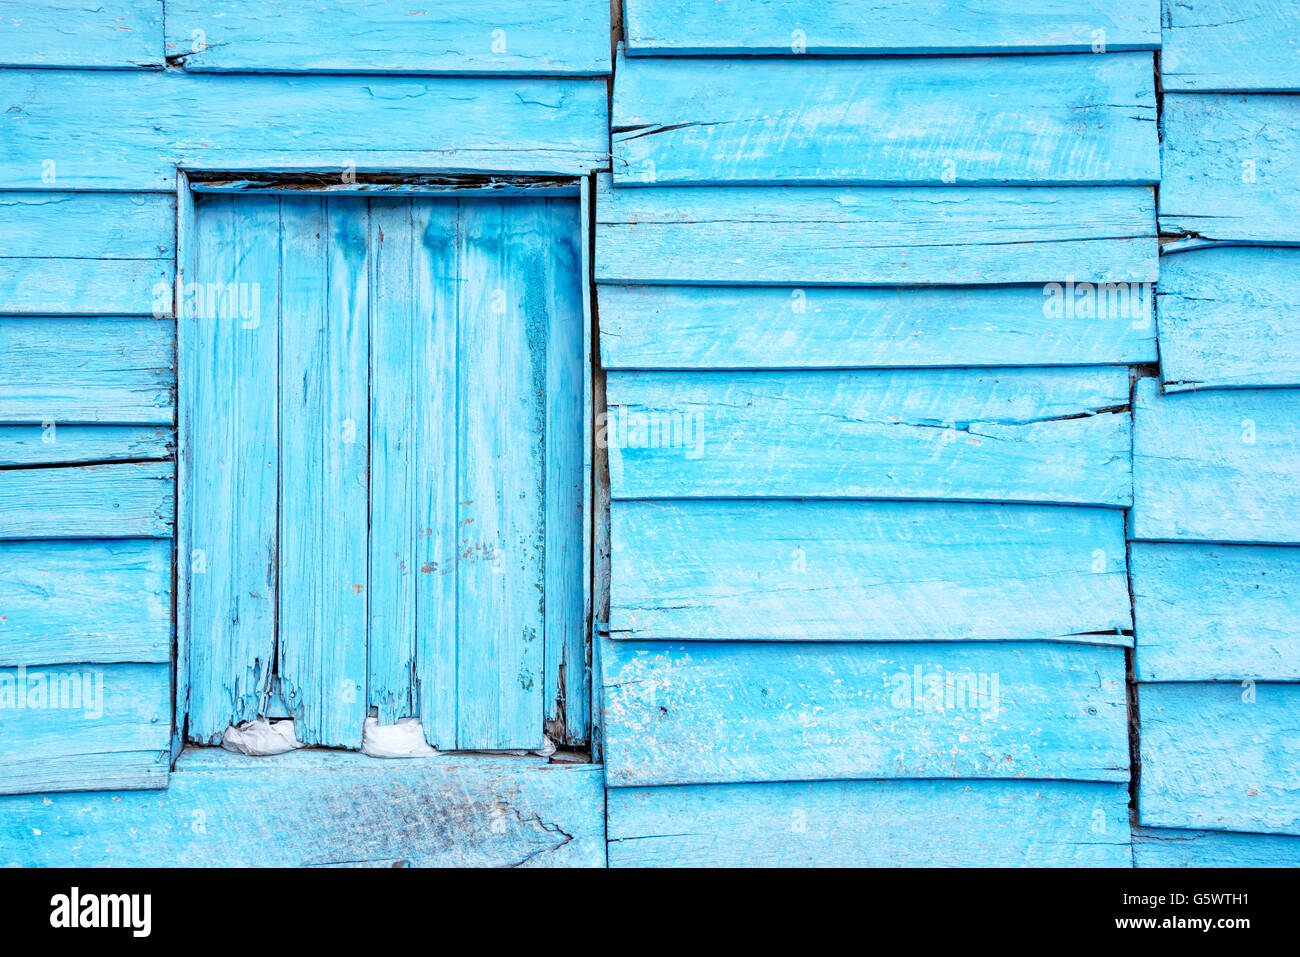 Blue planks wall background - Stock Image